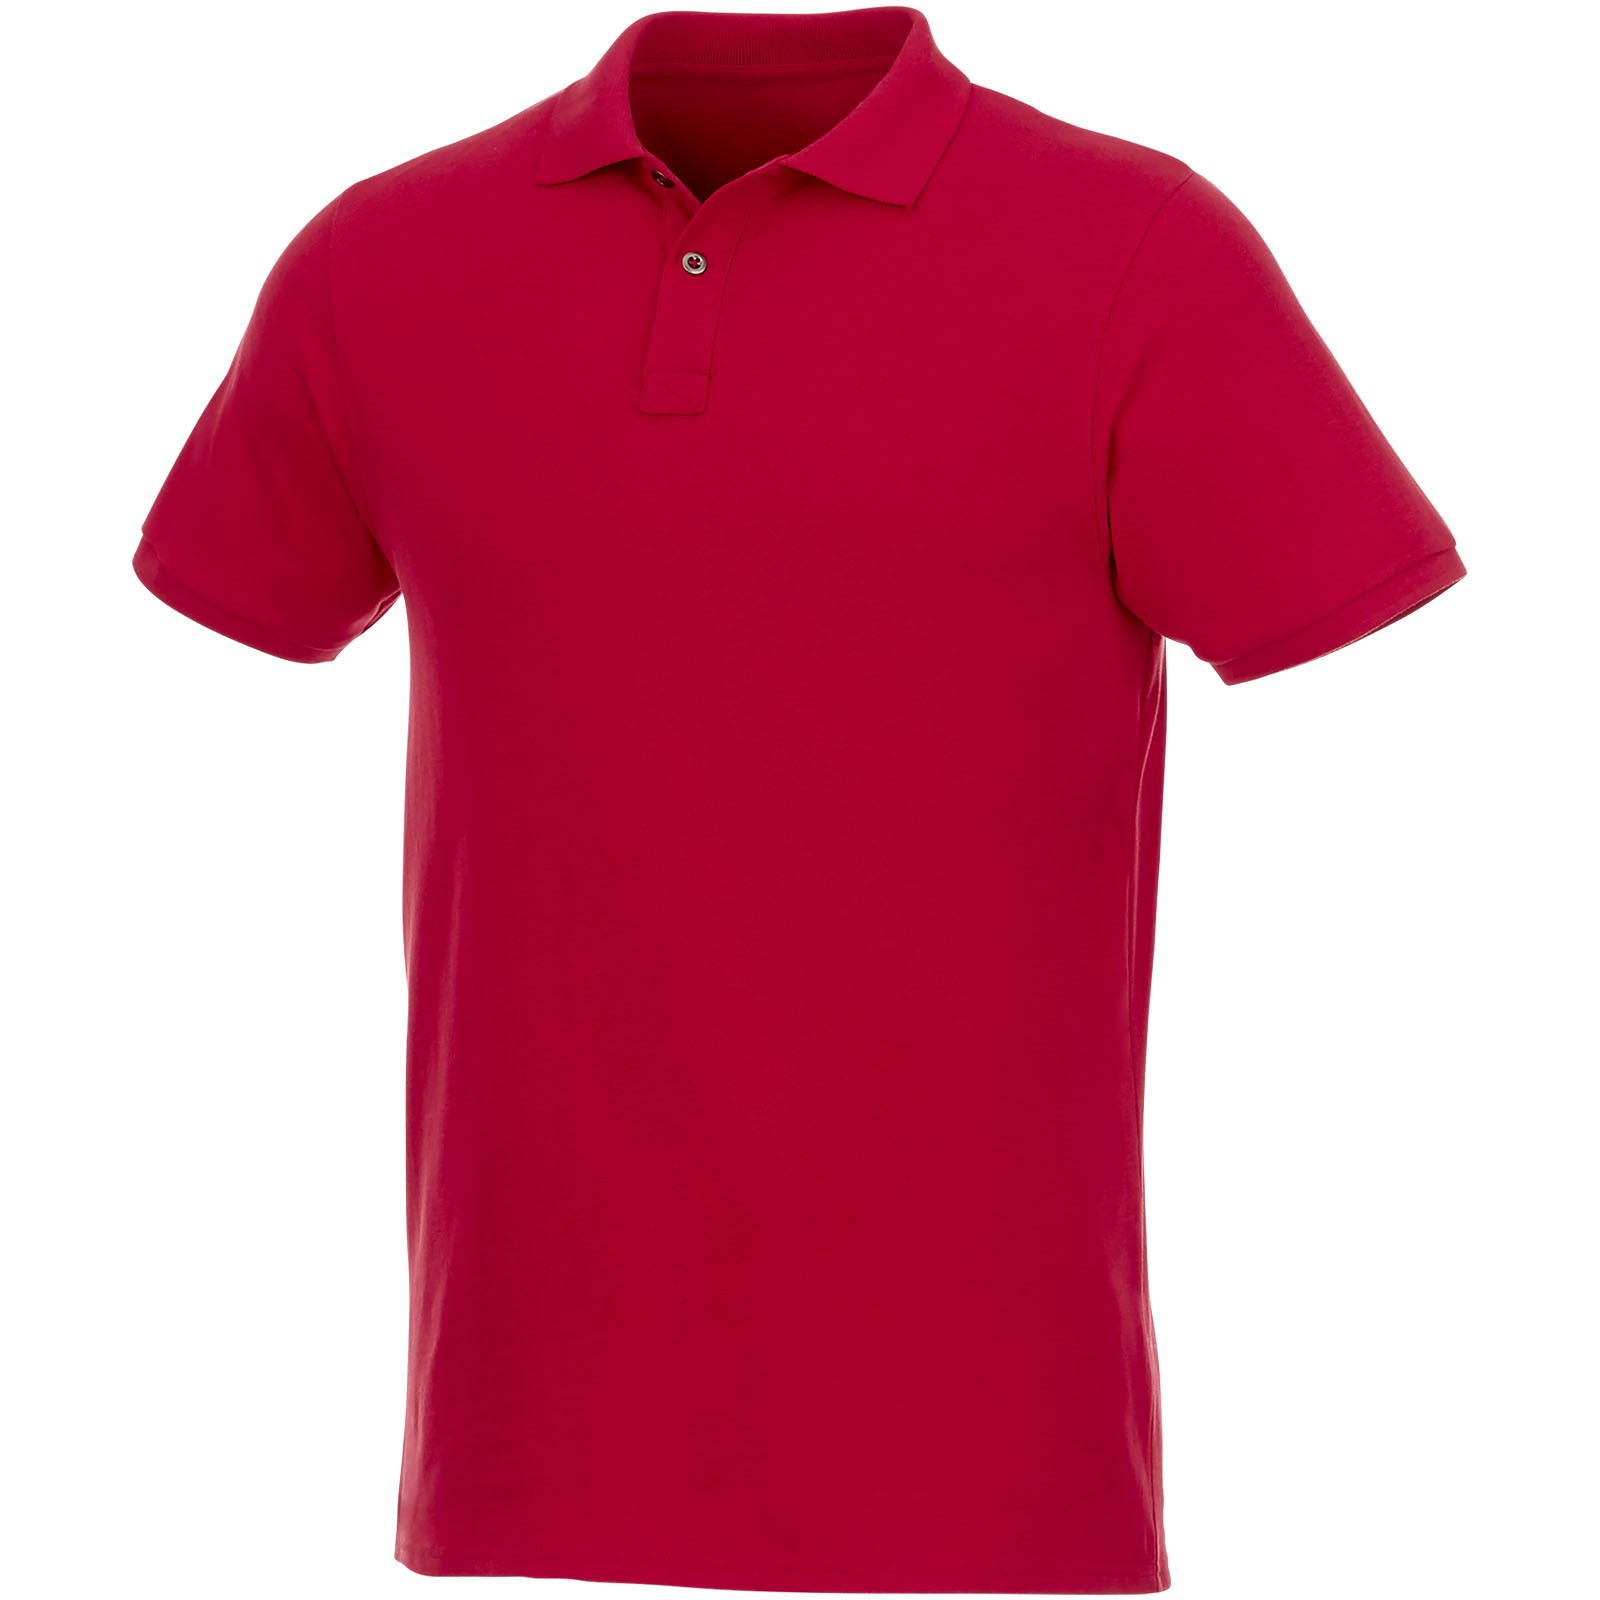 Beryl short sleeve men's GOTS organic GRS recycled polo - Red / M